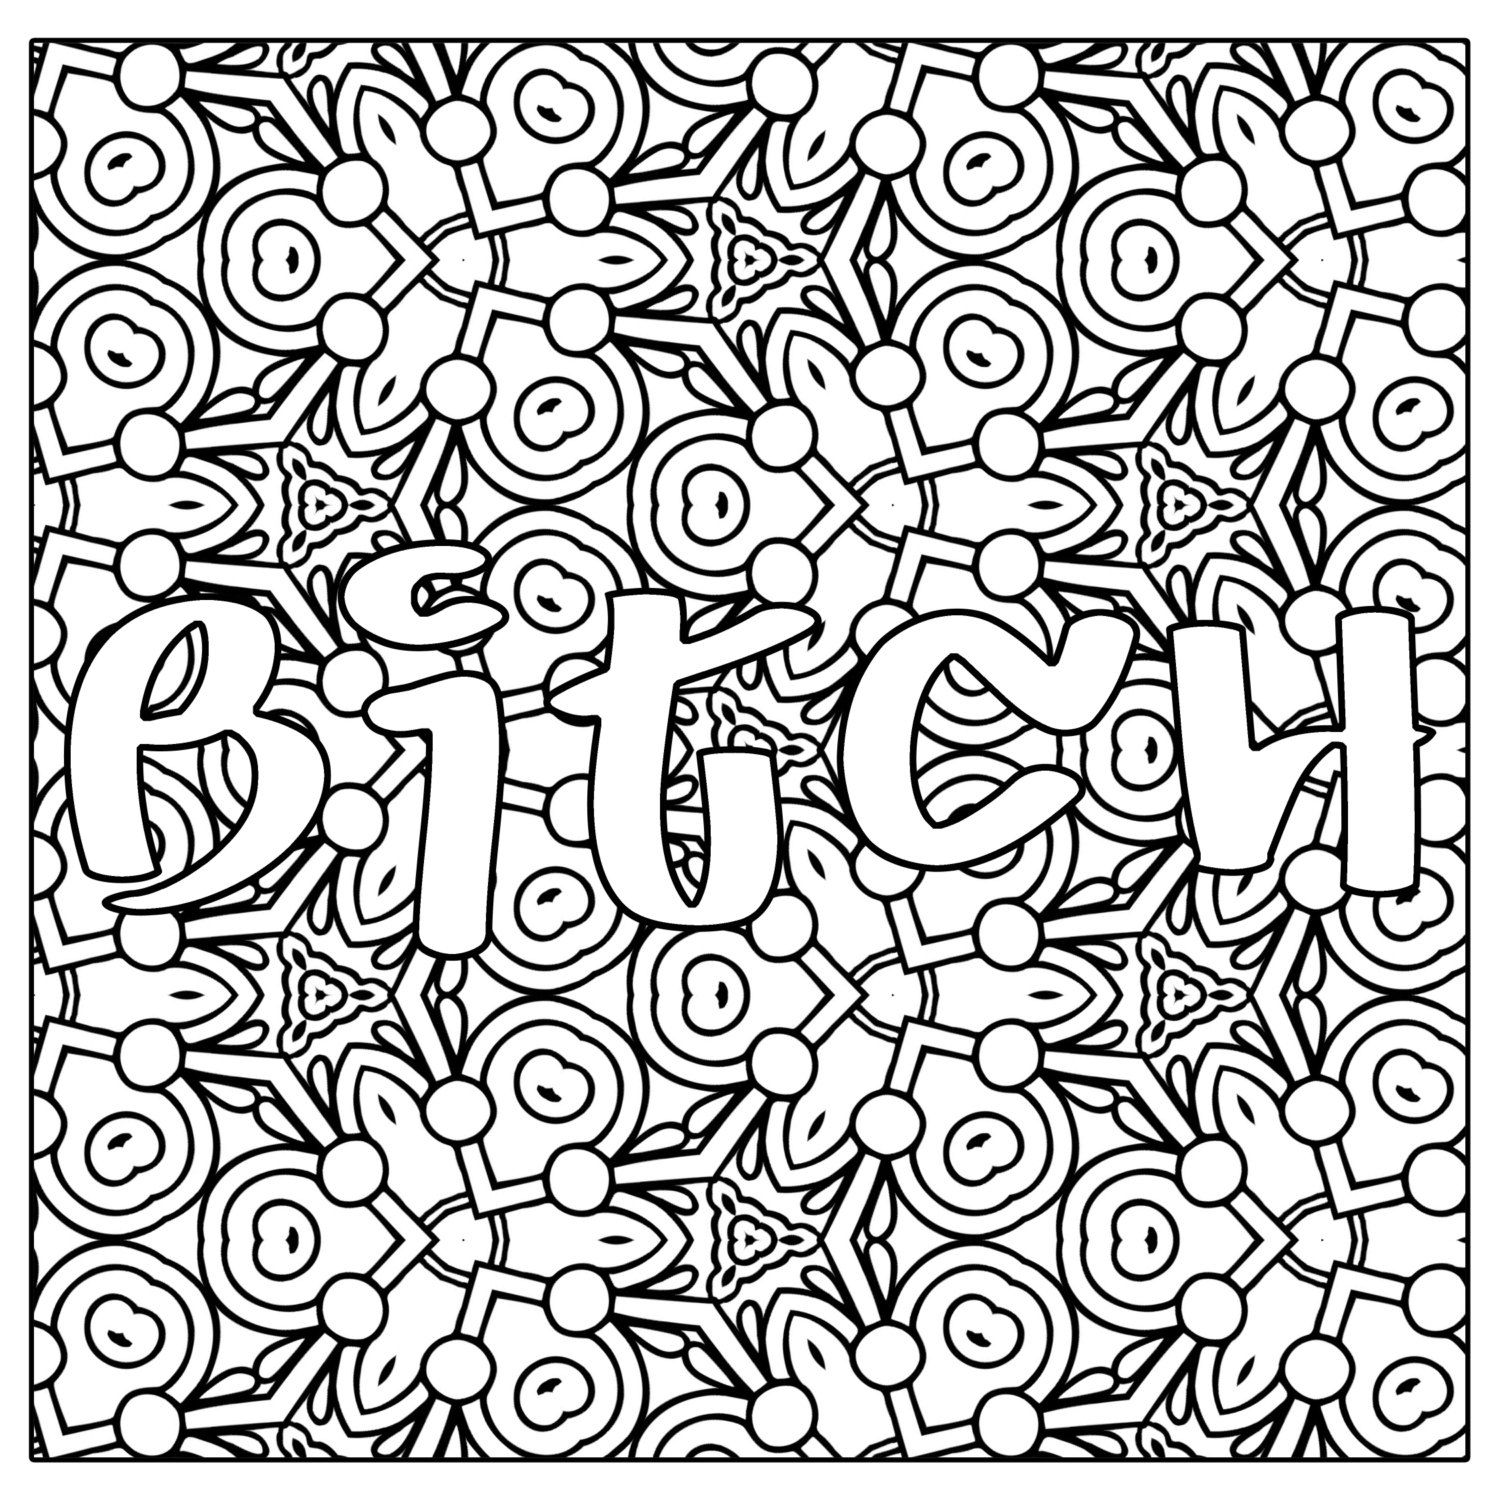 coloring books for adults bad words pin by shari wirth on coloring pages coloring pages for coloring adults bad words books